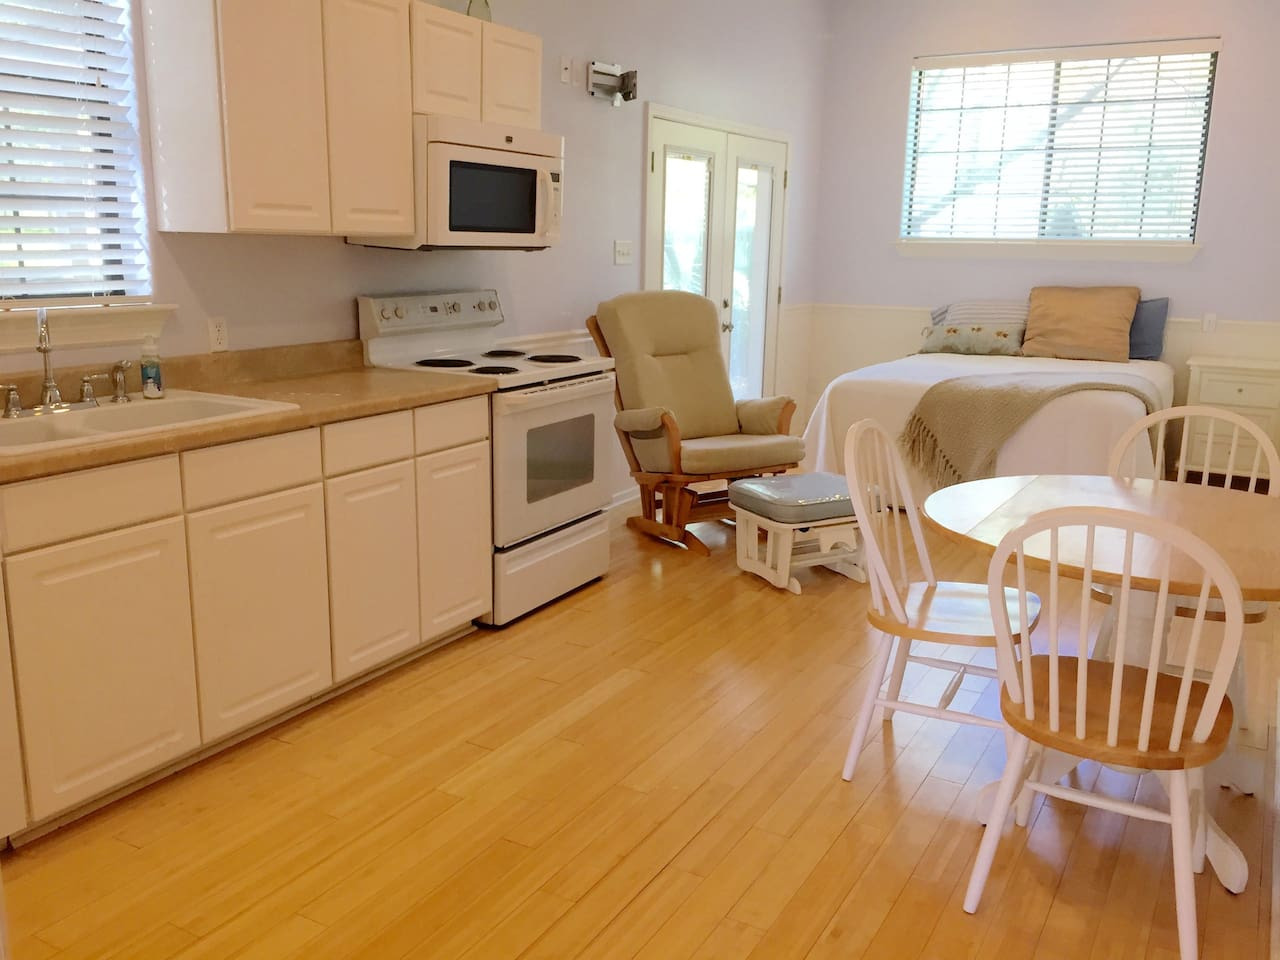 Adorable, clean efficiency apartment.